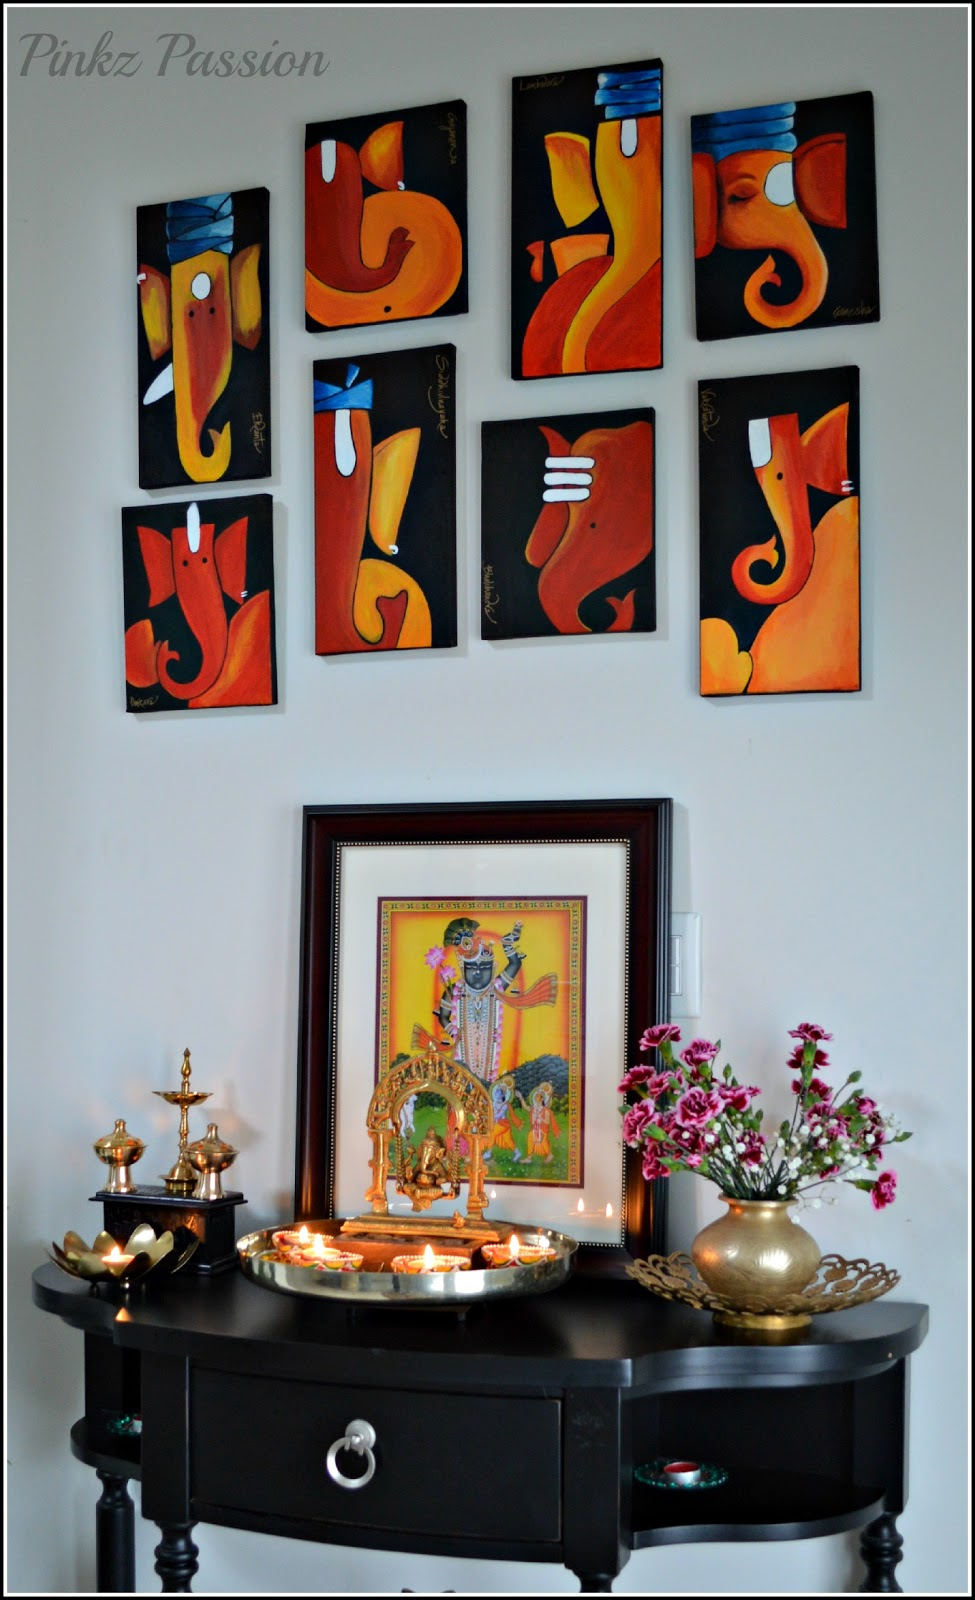 Pinkz passion festival of lights diwali decor 1 for Home decorations in diwali